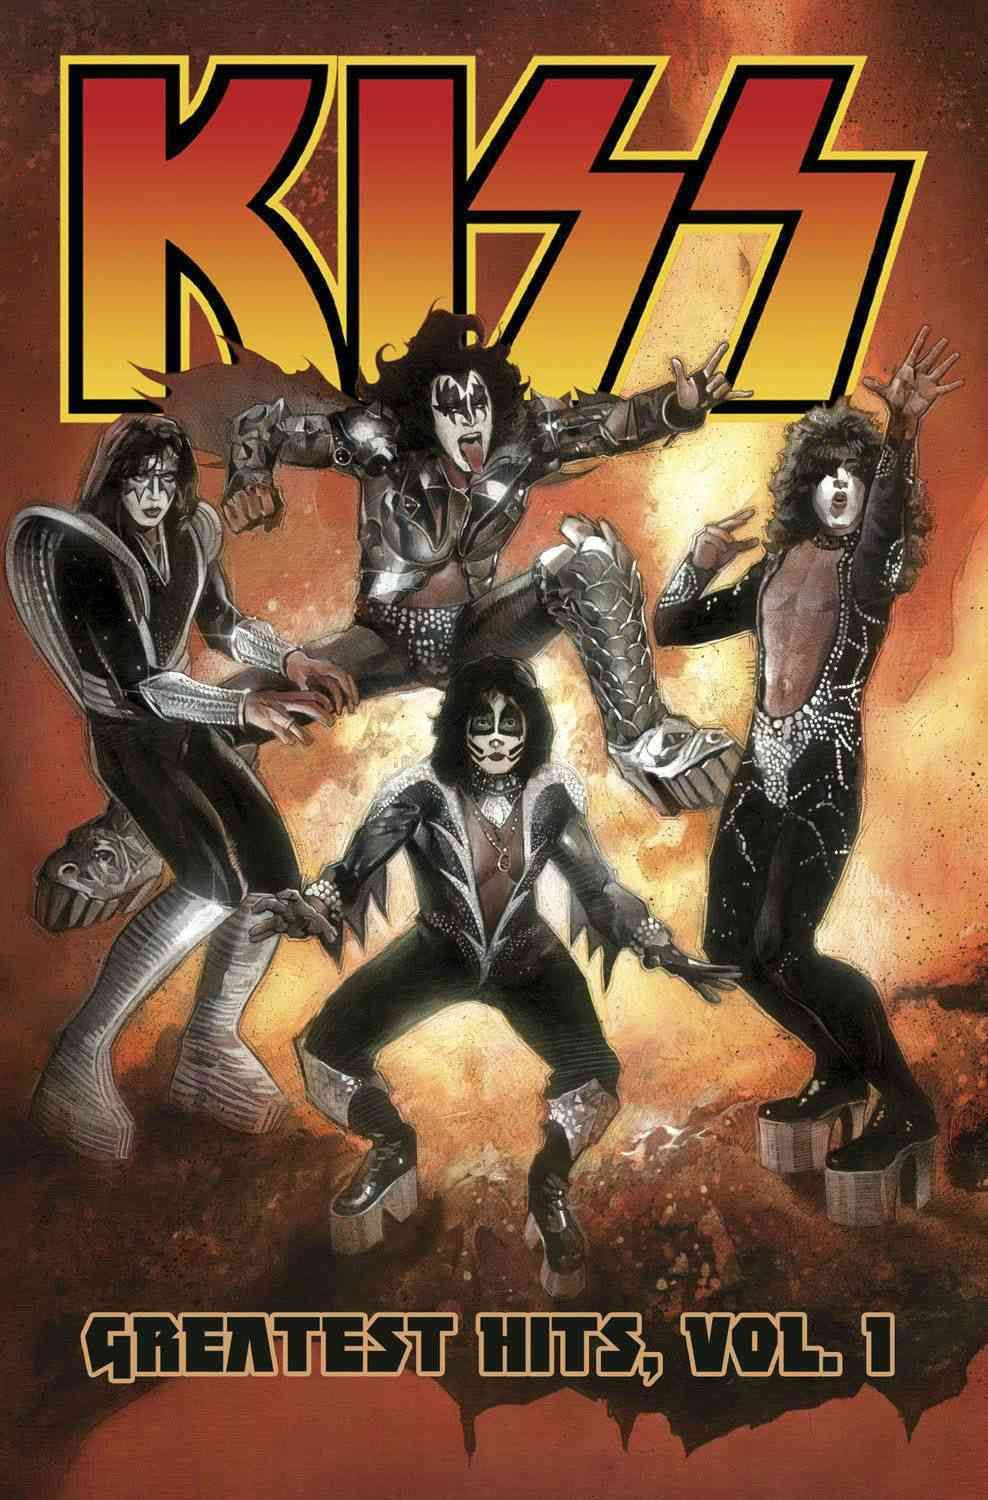 In 1977, Kiss was not only the biggest band in the world